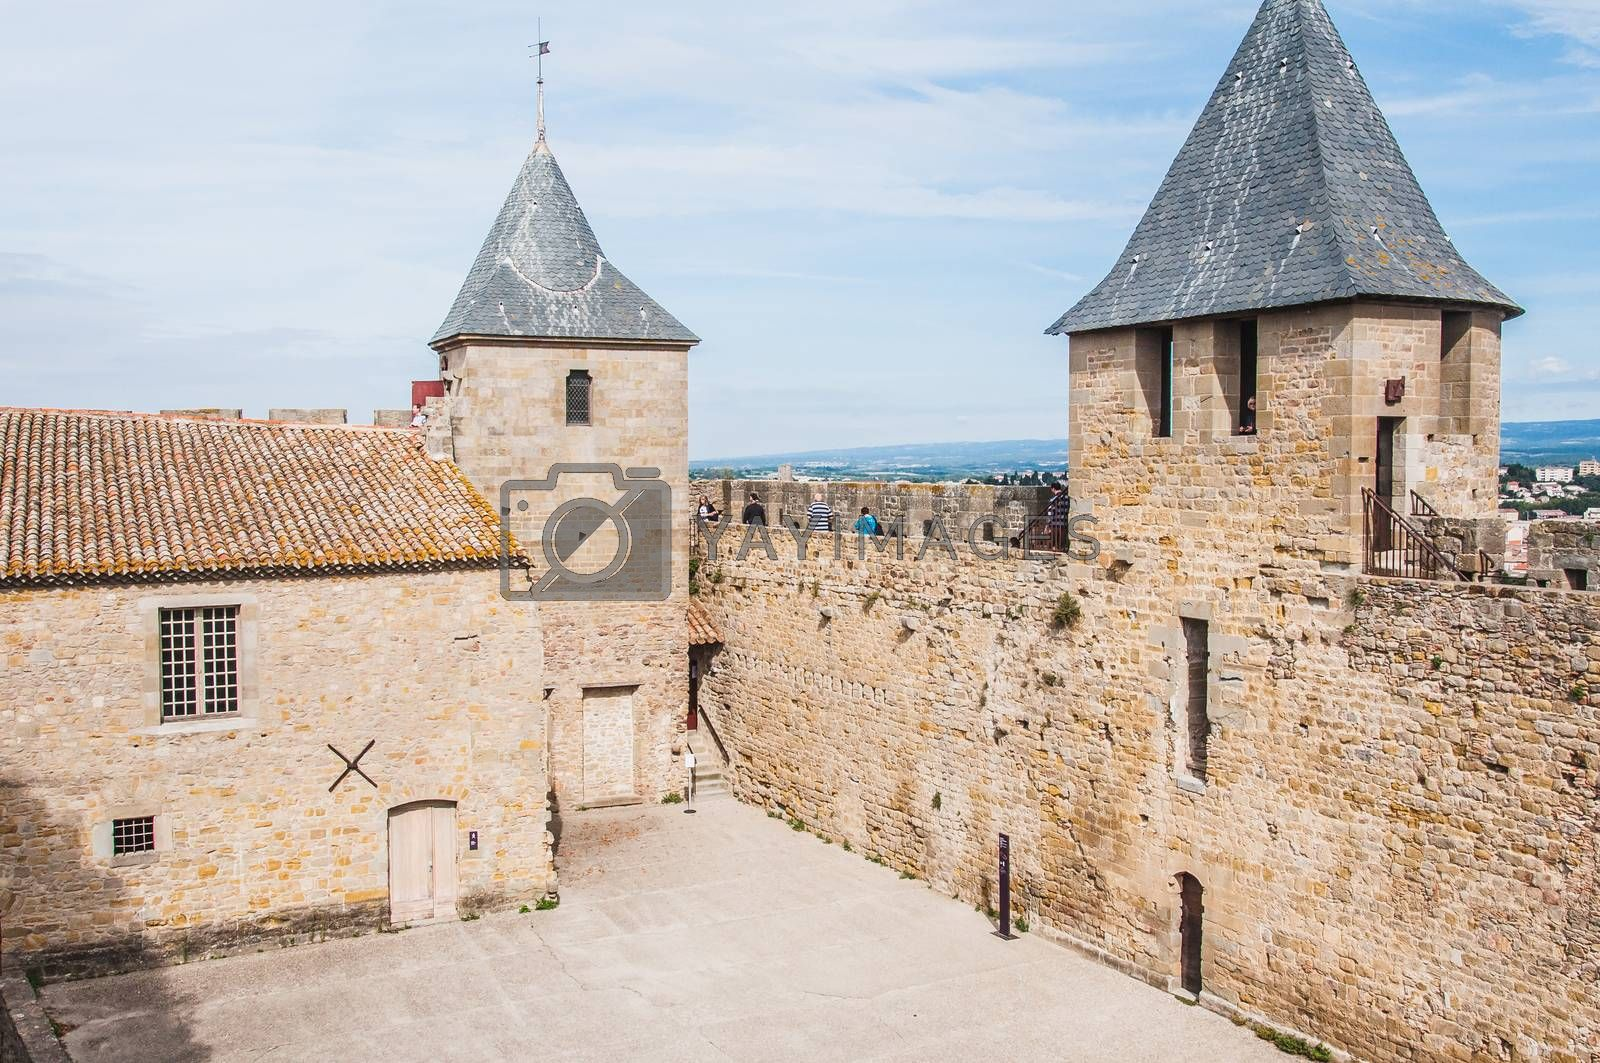 Ramparts of the Medieval City of Carcassonne in France by raphtong